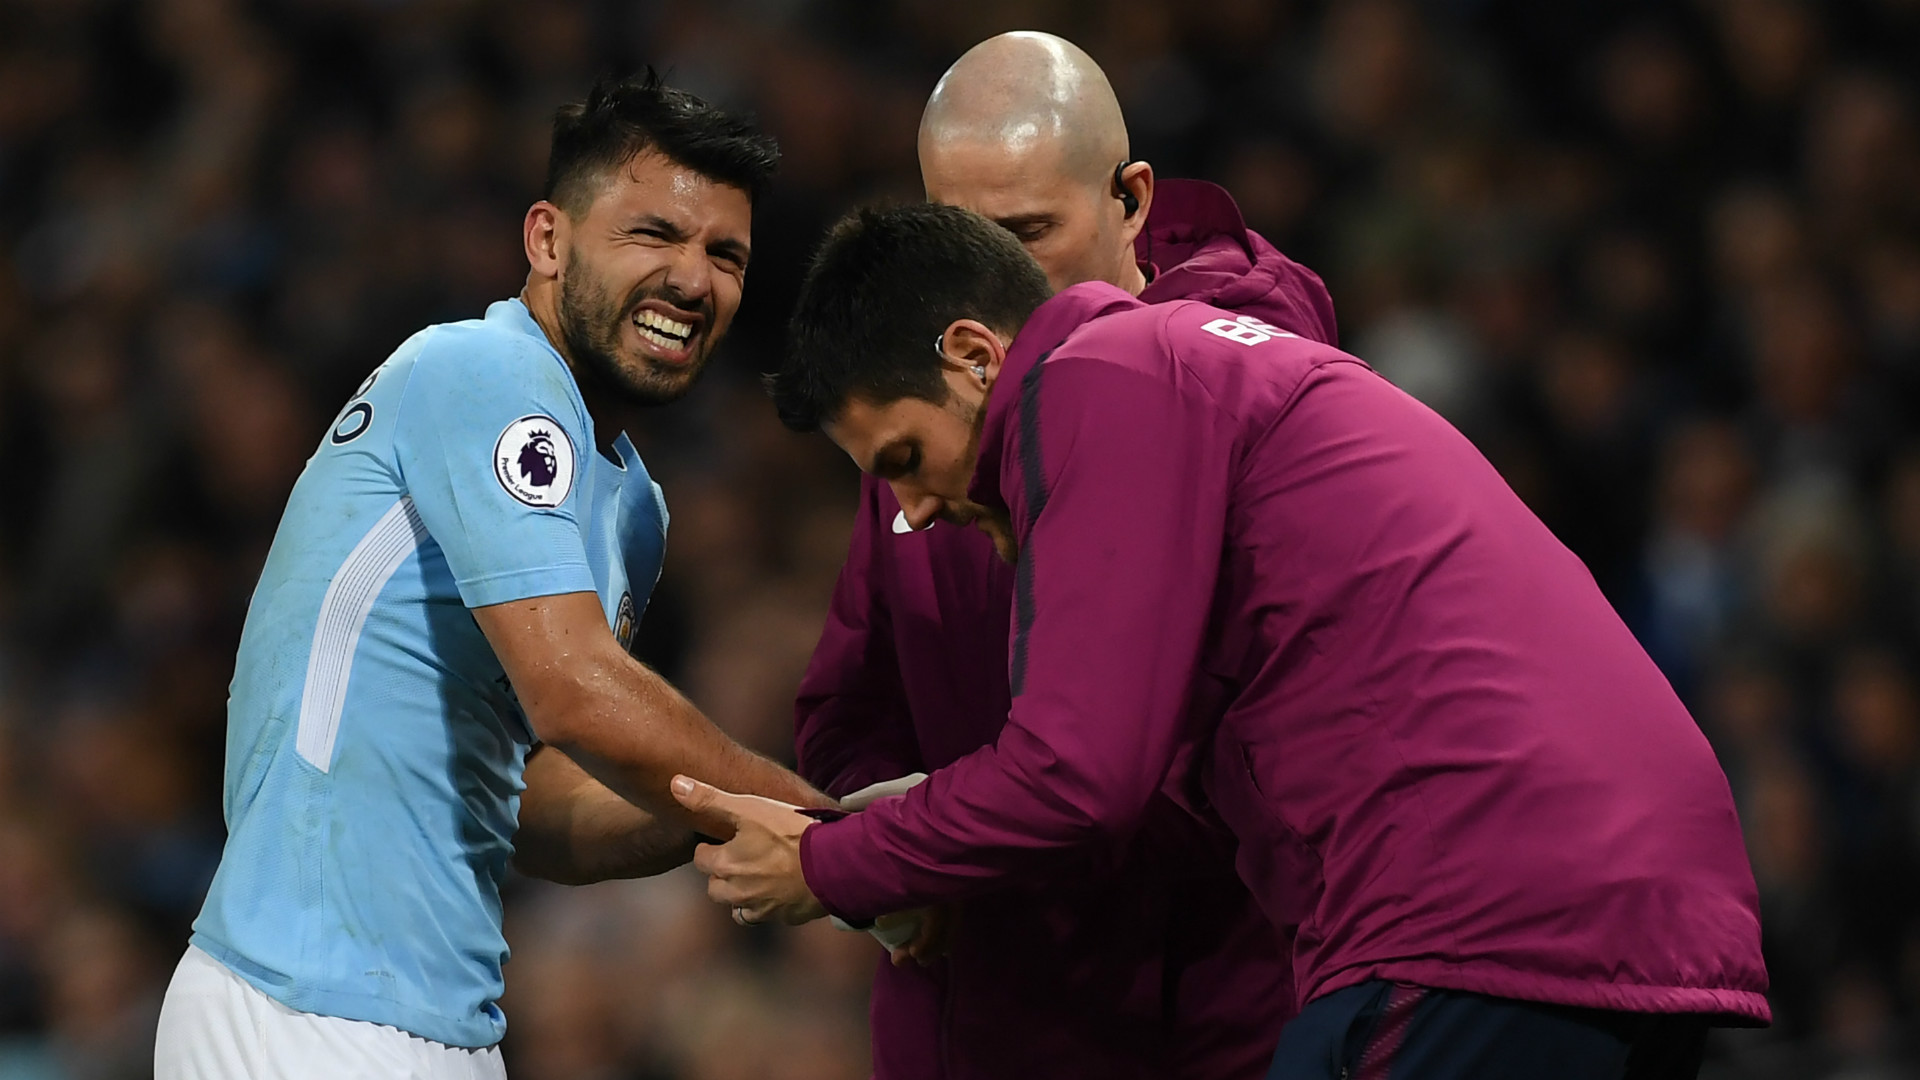 Gabriel Jesus starts after Sergio Agüero injures knee in training